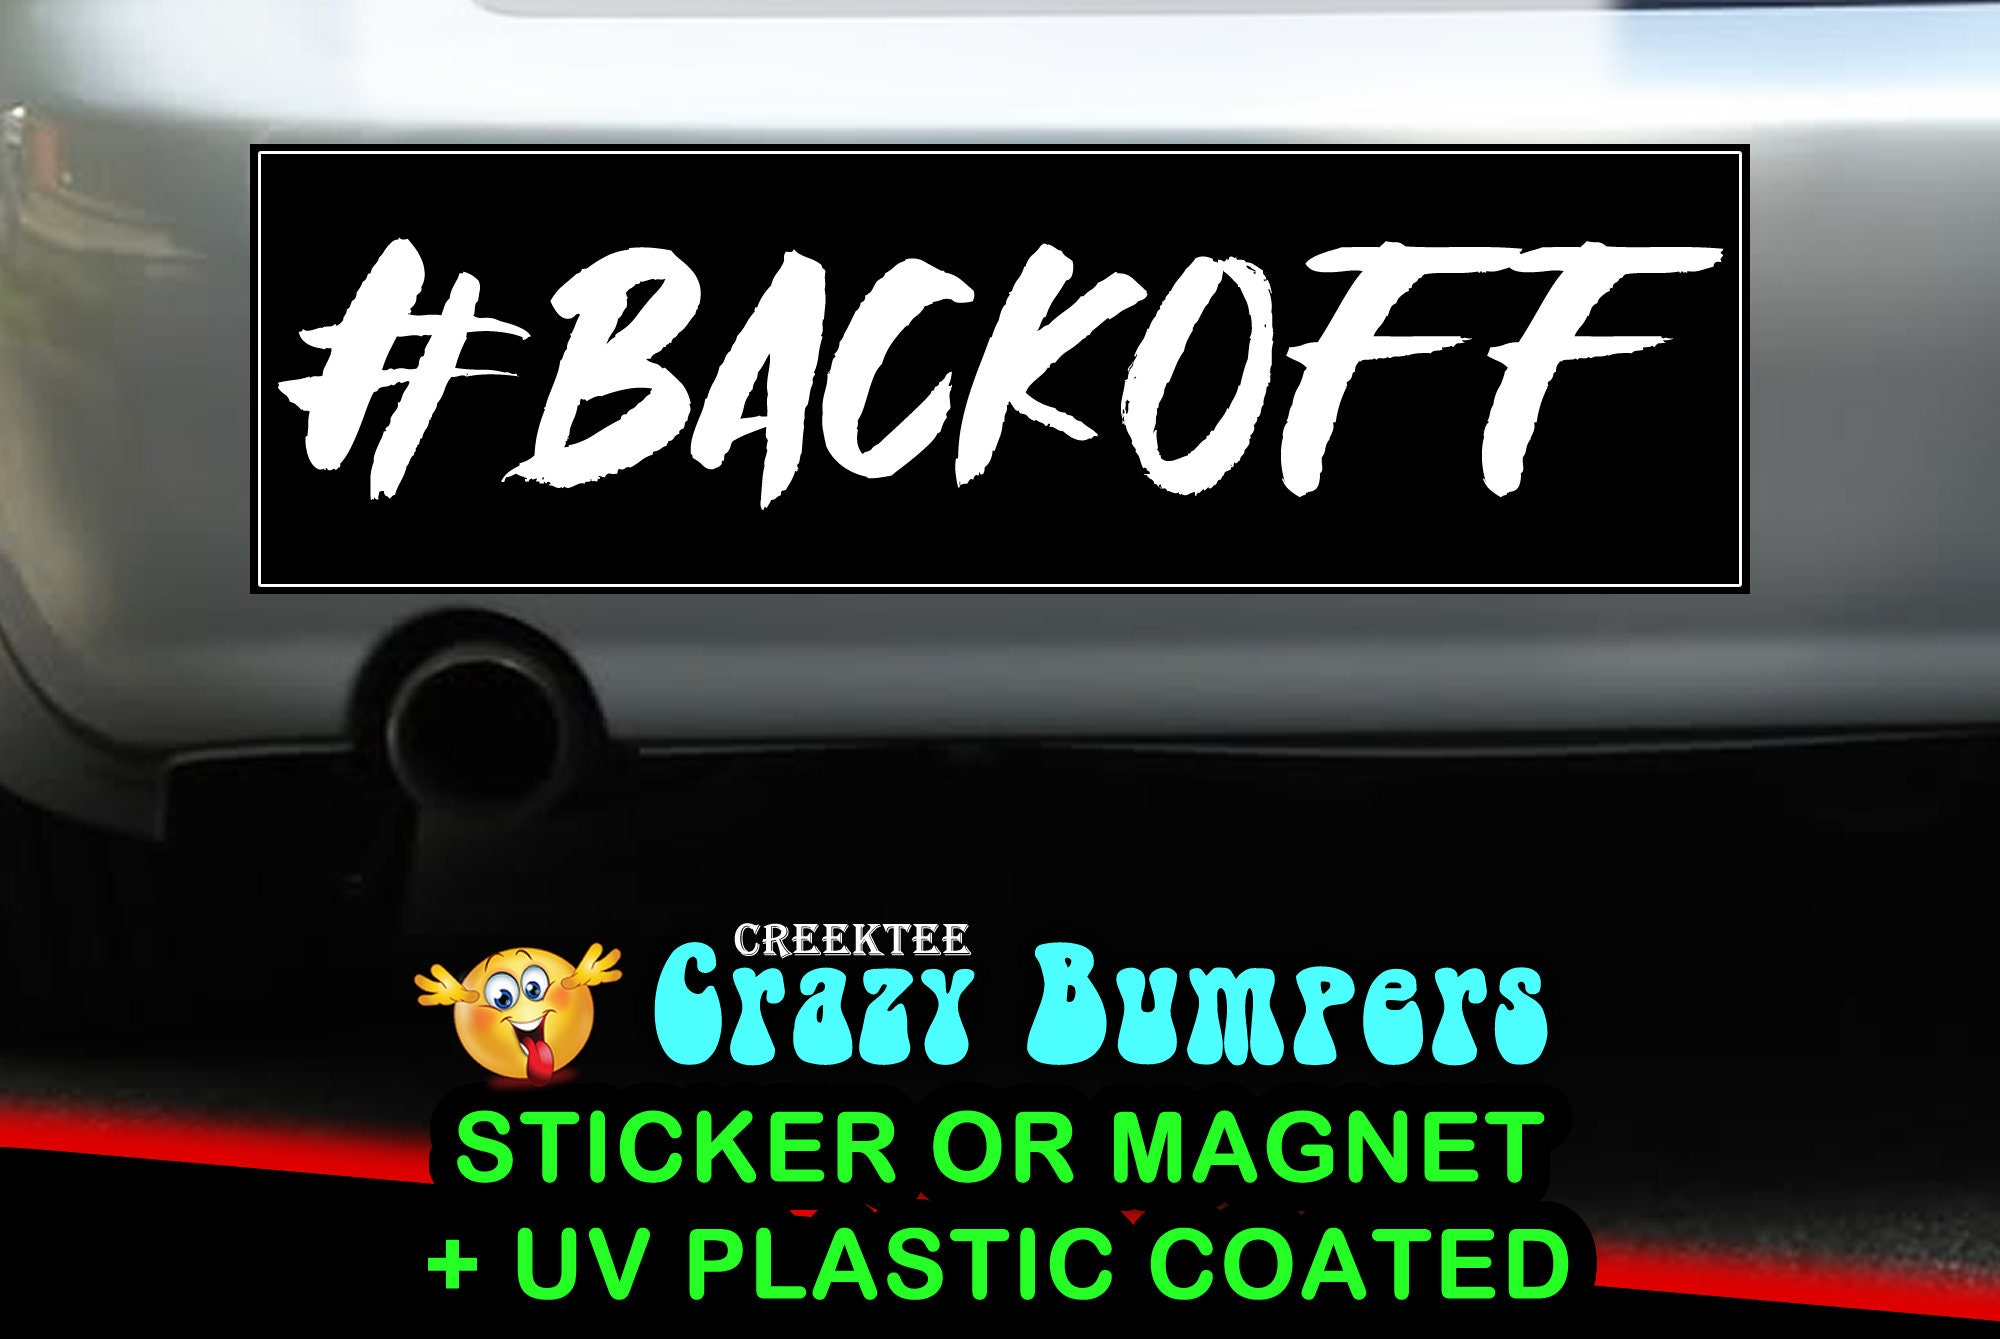 Hashtag Back Off Bumper Sticker 10 x 3 Bumper Sticker or Magnetic Bumper Sticker Available